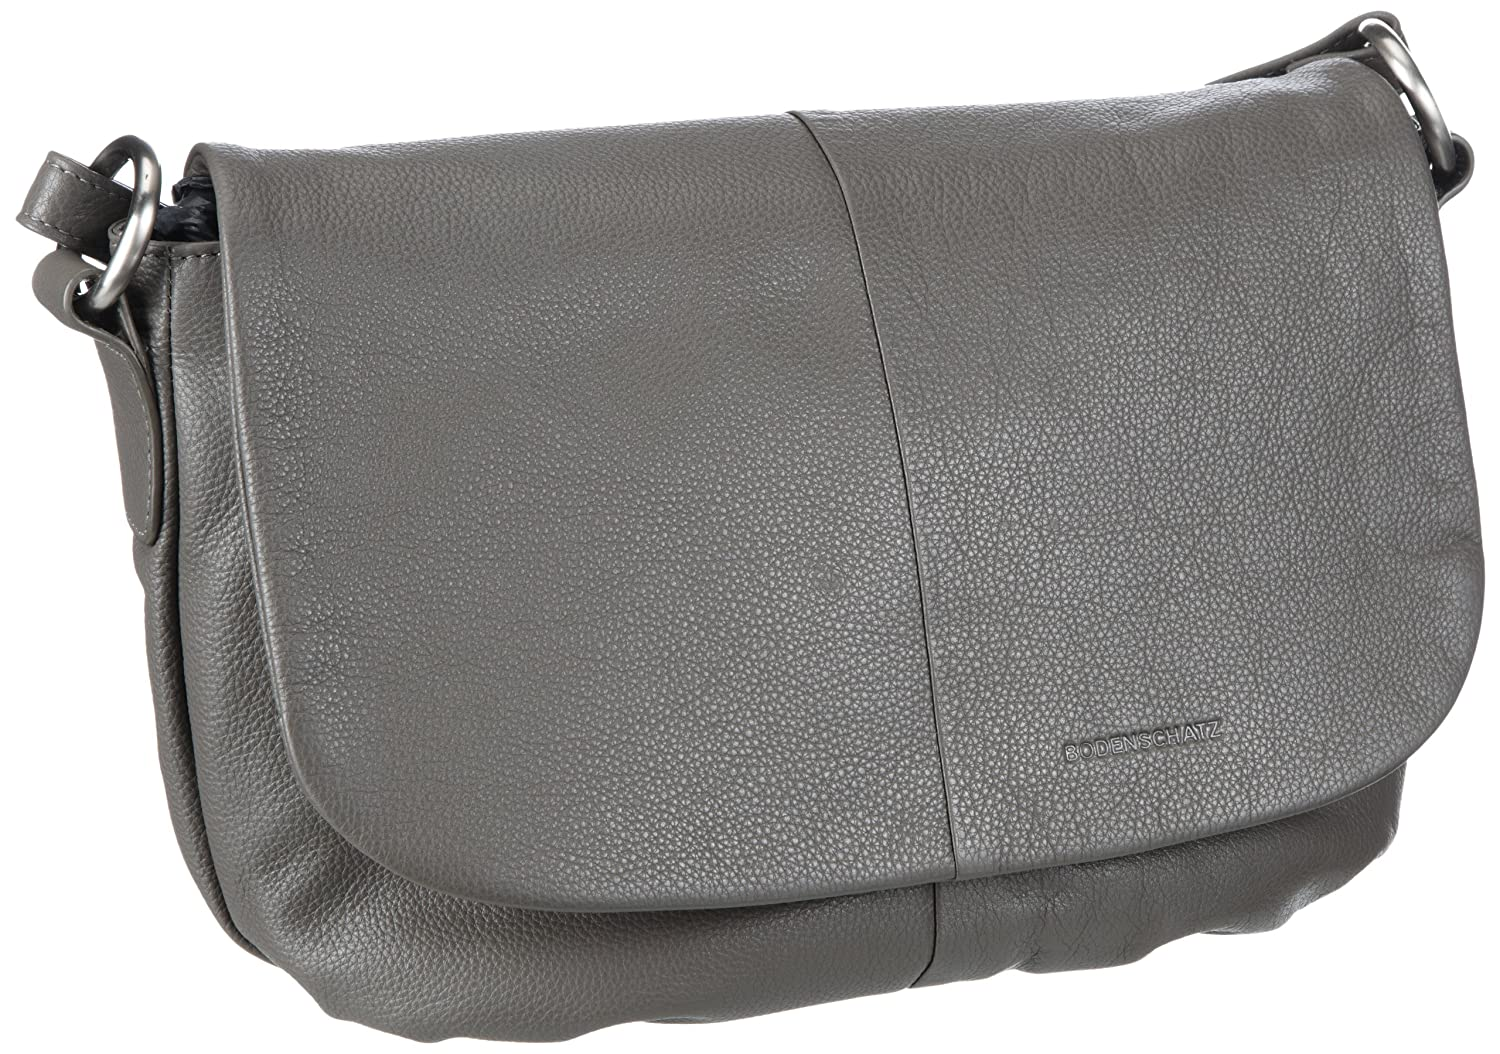 Bodenschatz Women Savona Cross-Body Bag